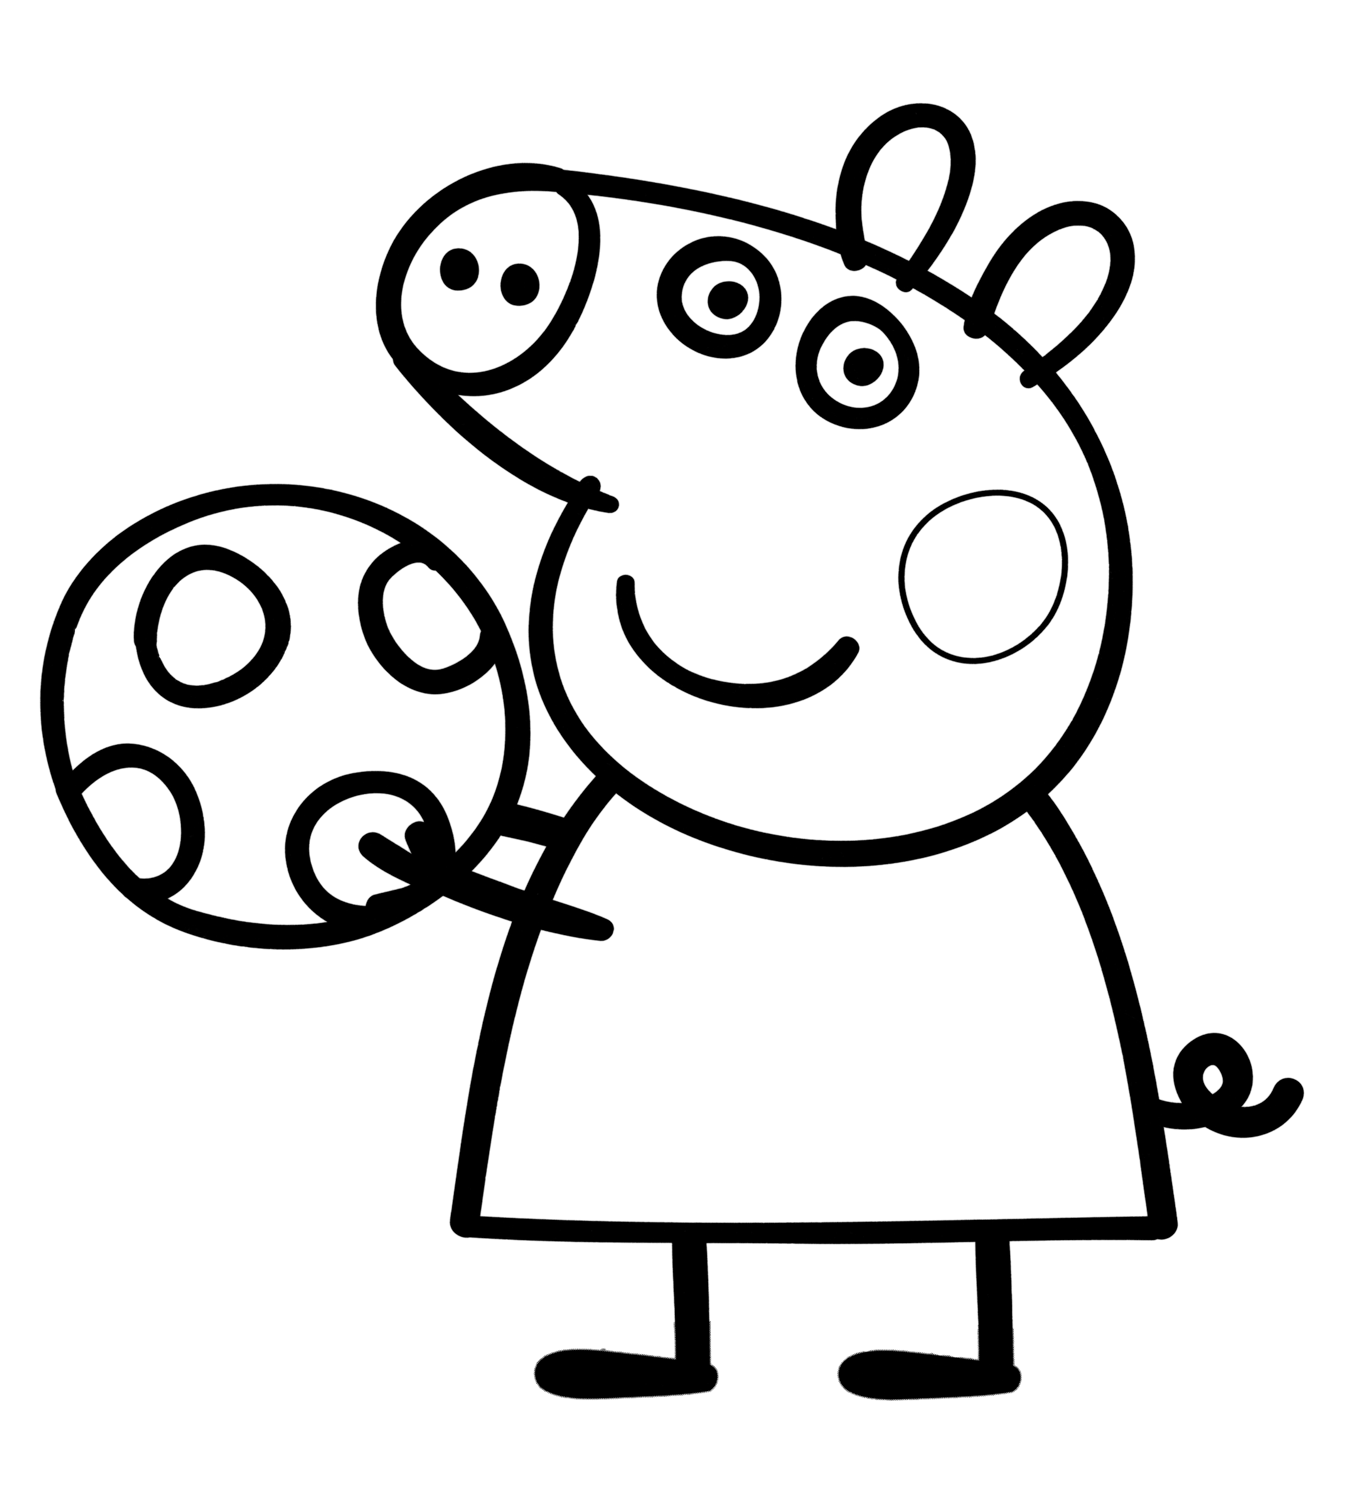 Pig Peppa Pig plays with the ball